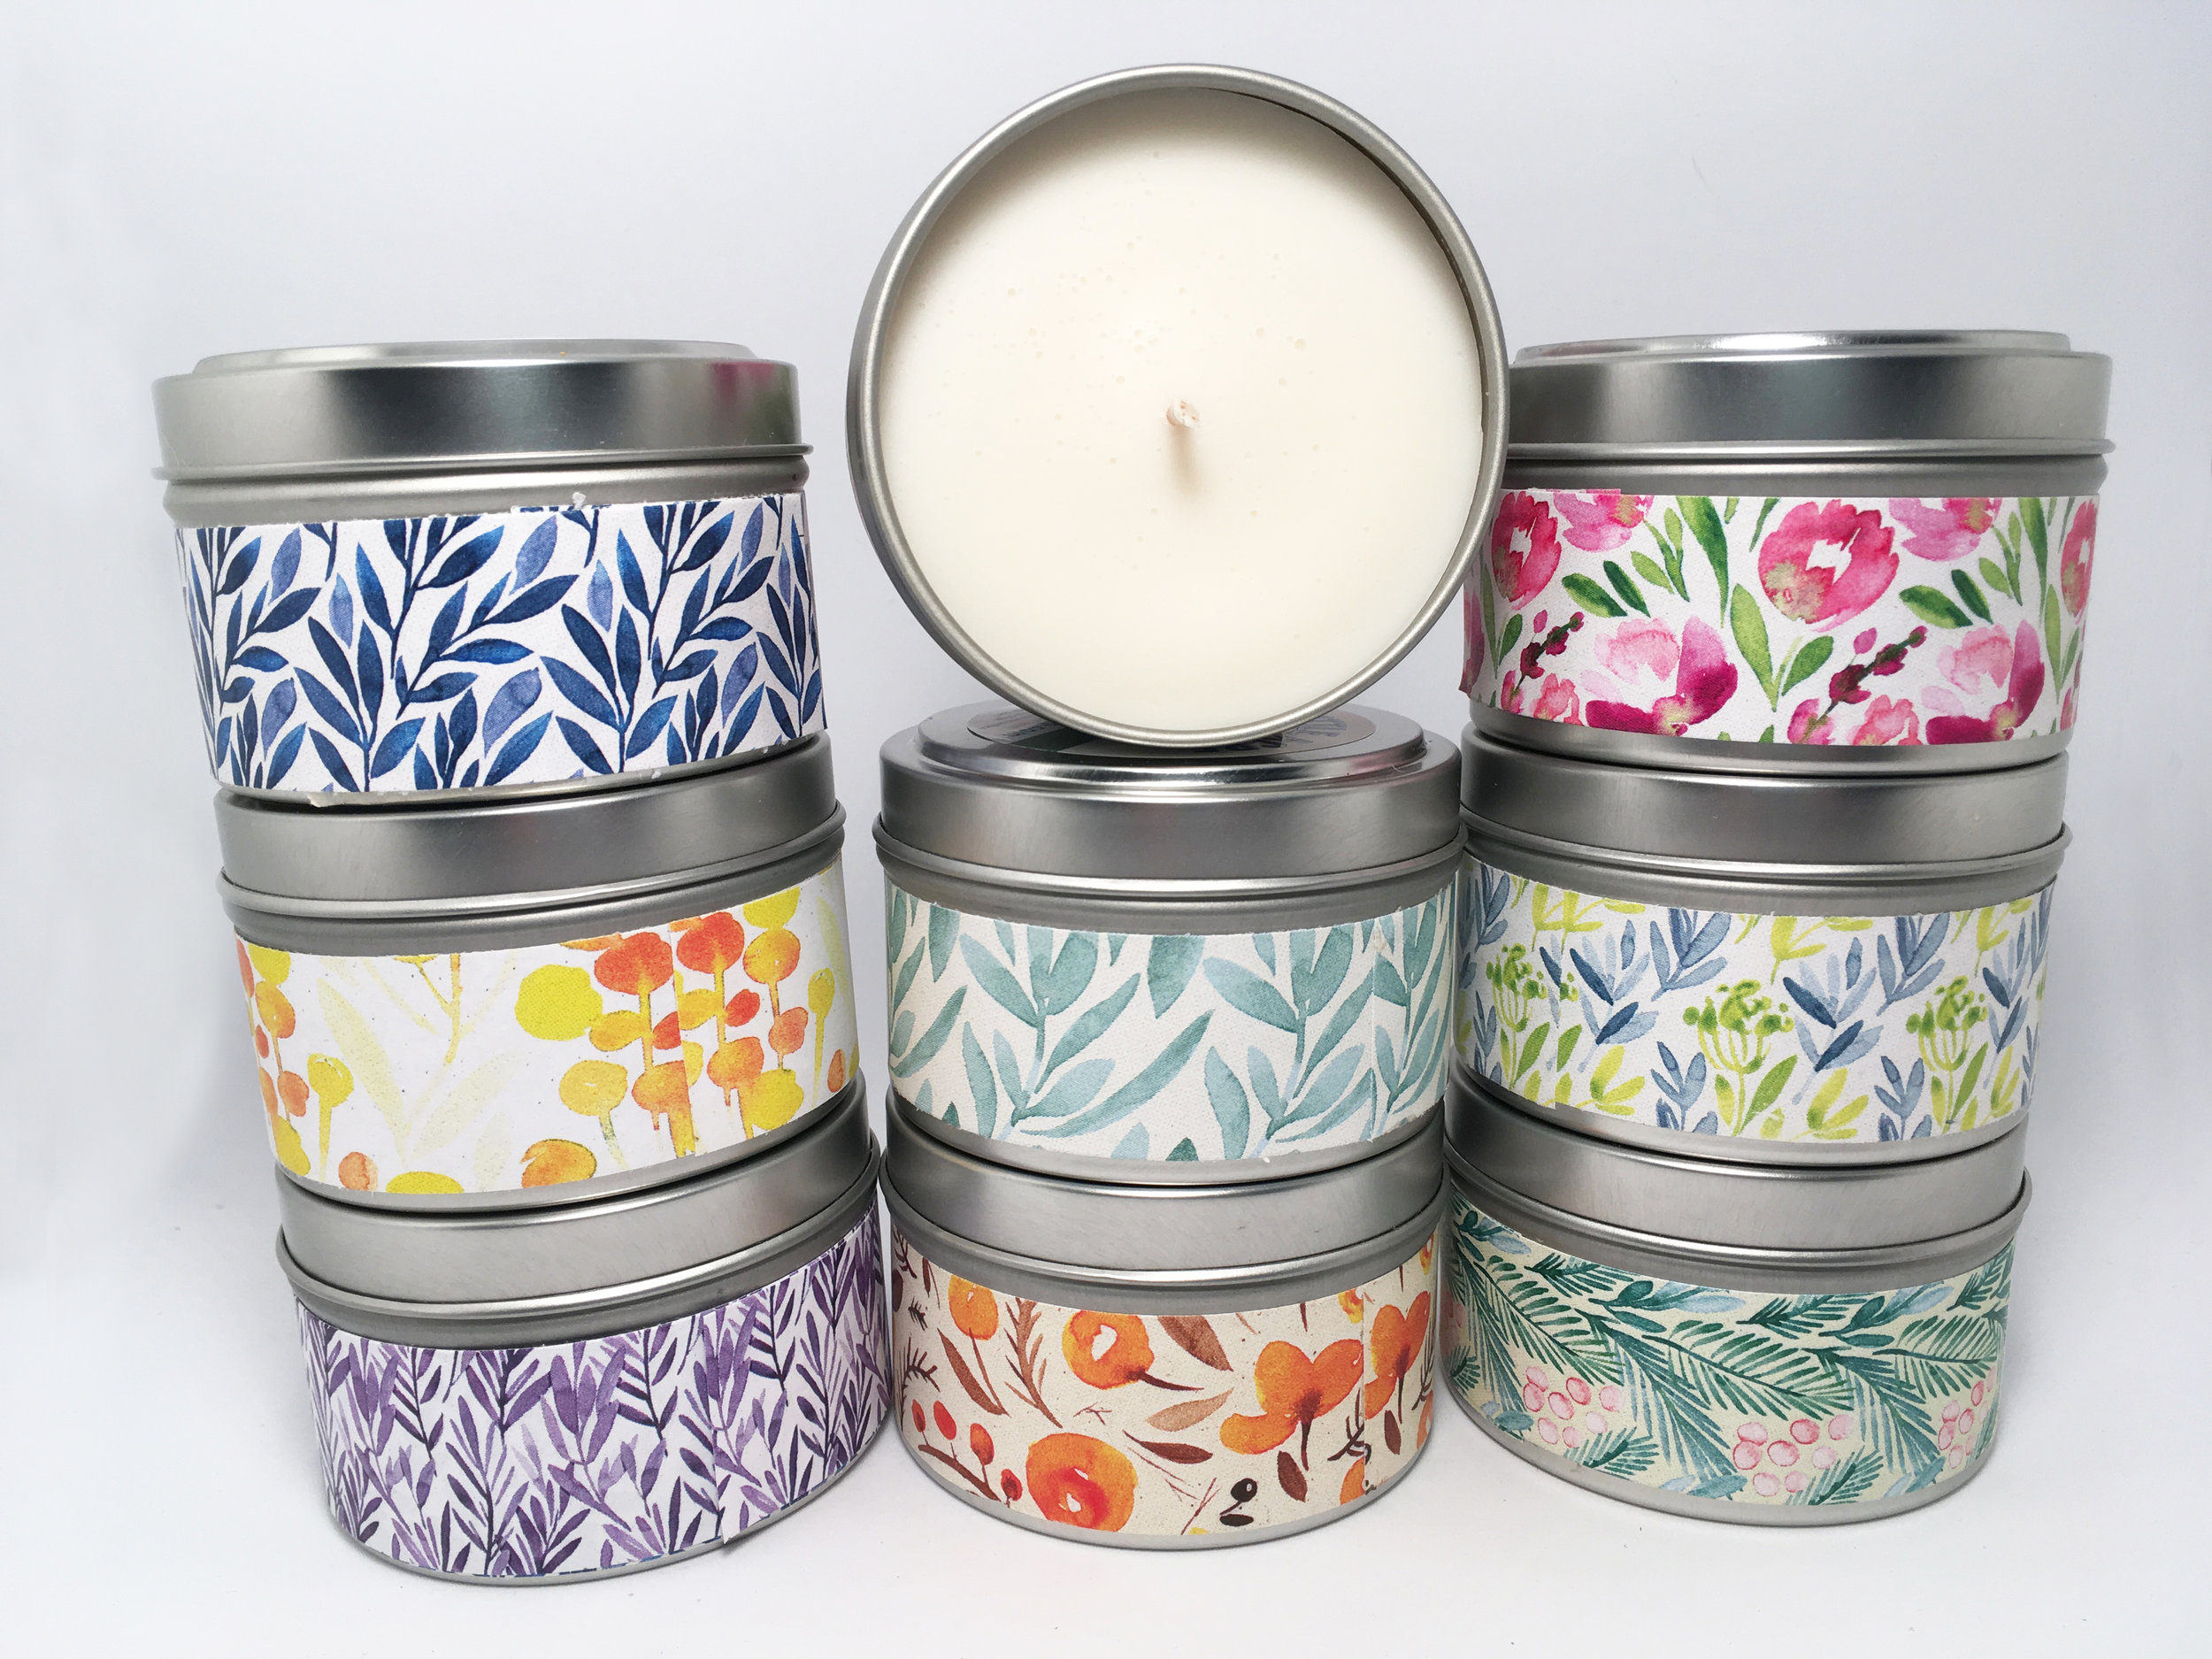 INTO THE WOODS SOY CANDLE  — Cedarwood, Rosemary,  $10/each or 3 for $25